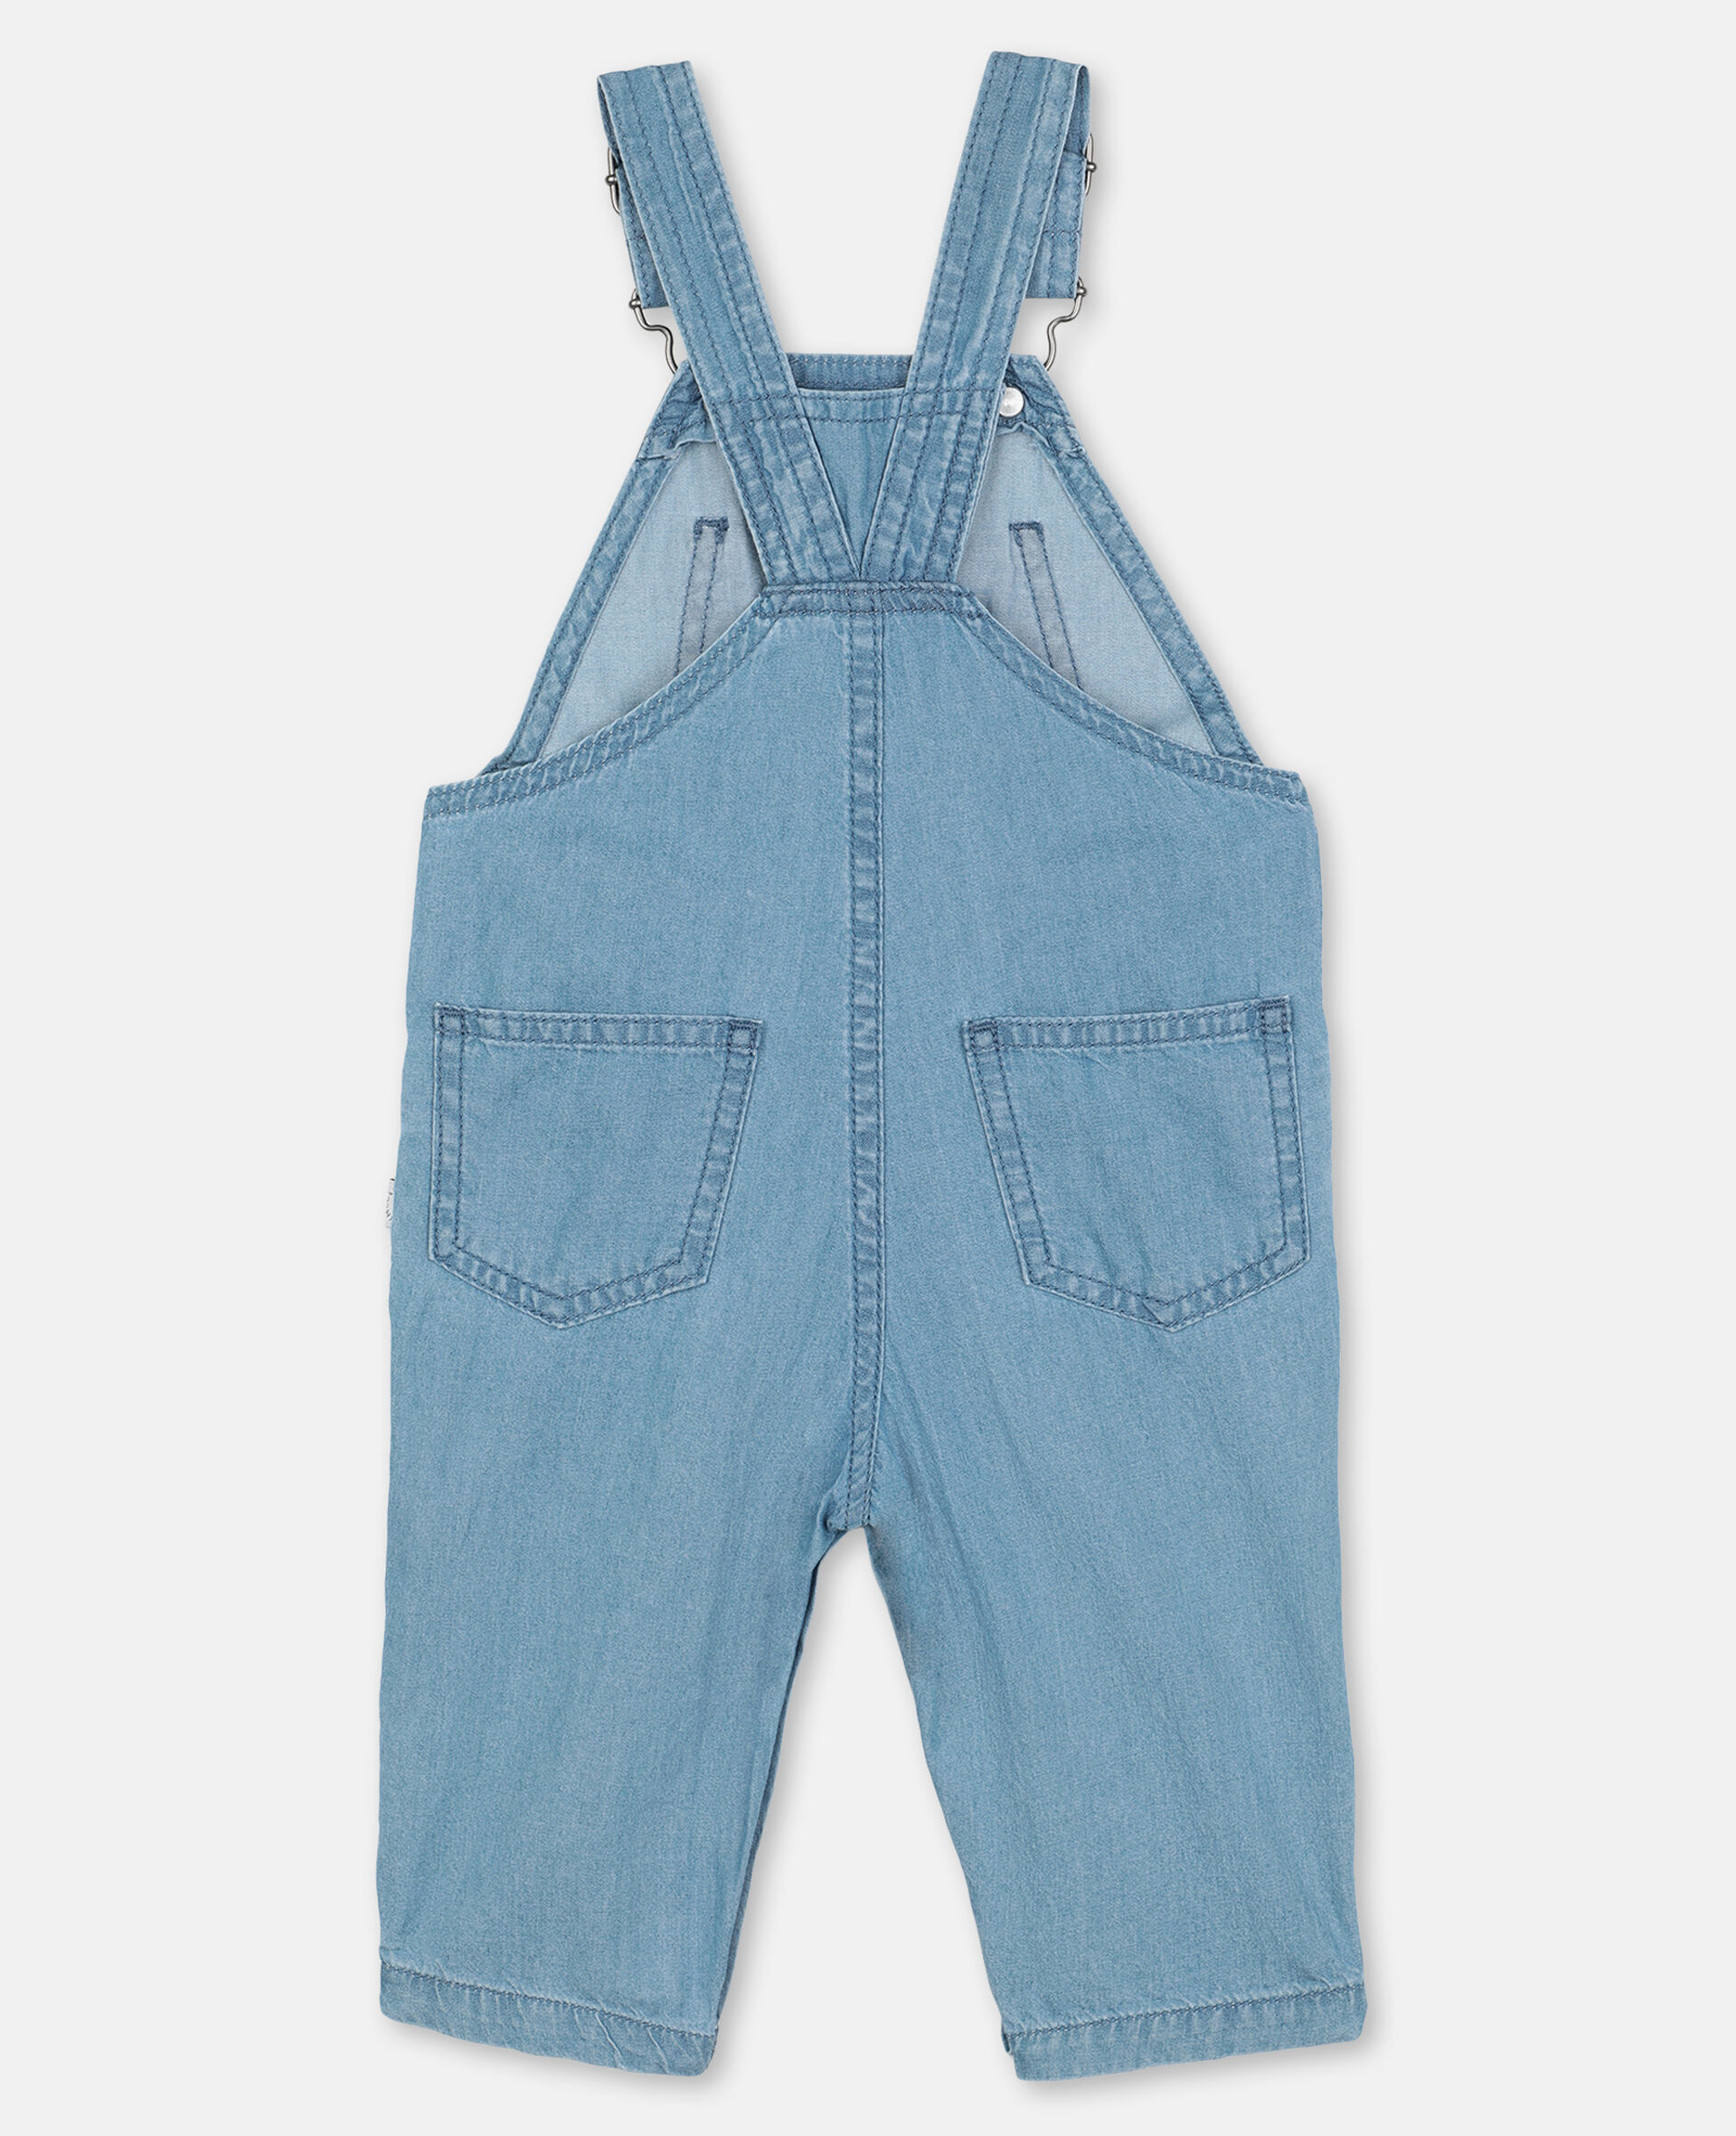 Embroidered Cats Cotton Chambray Overalls-Blue-large image number 3